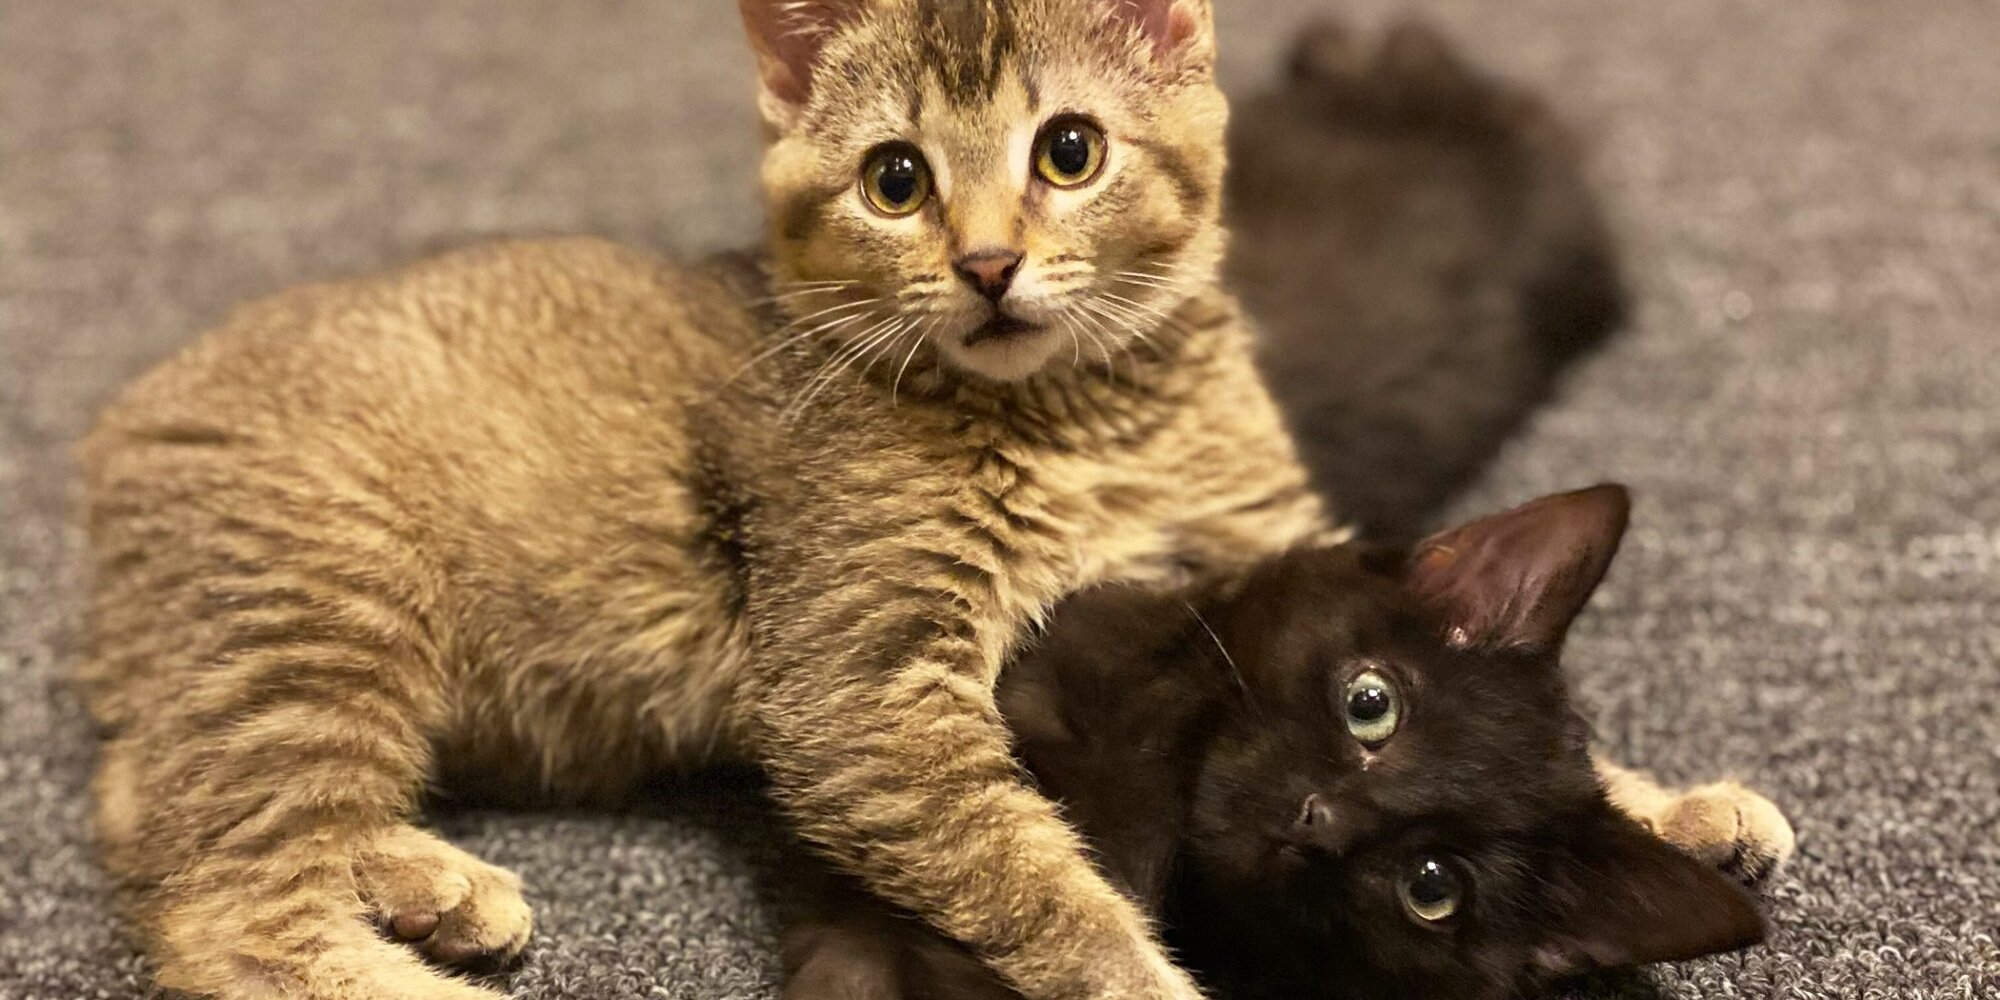 Sibling Barn Kittens with Manx Syndrome Fostered To Good Health